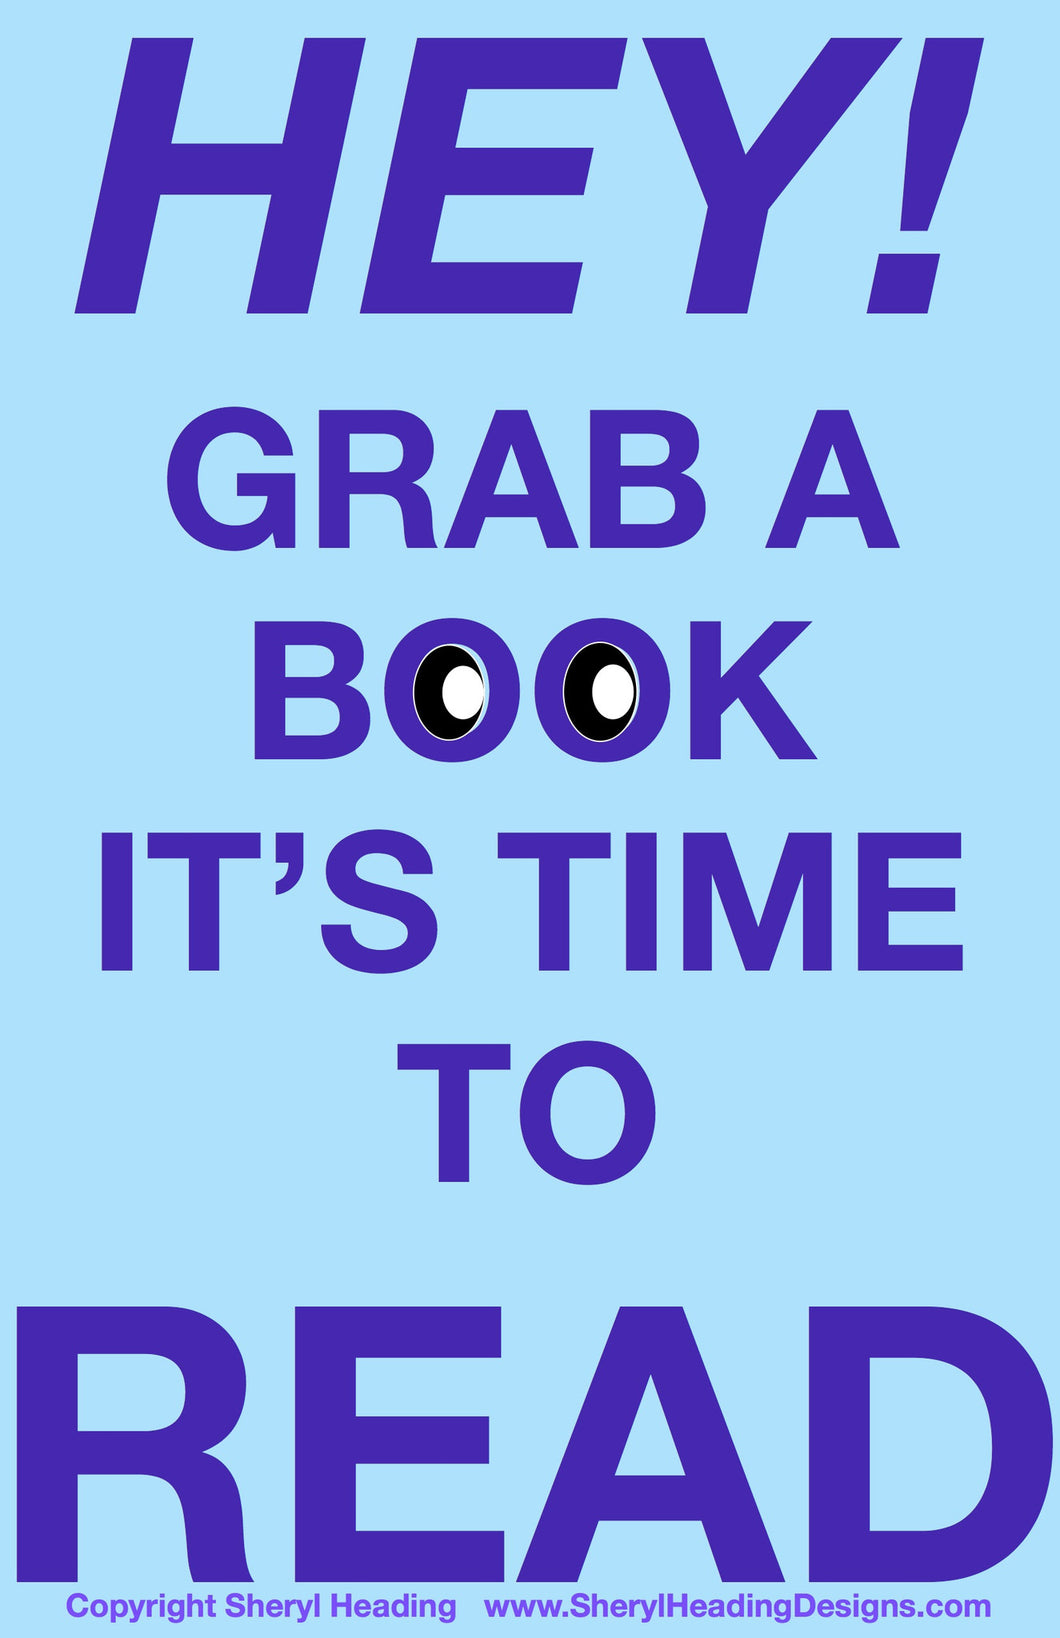 Hey! Grab a Book It's Time to READ Poster - Sheryl Heading Designs